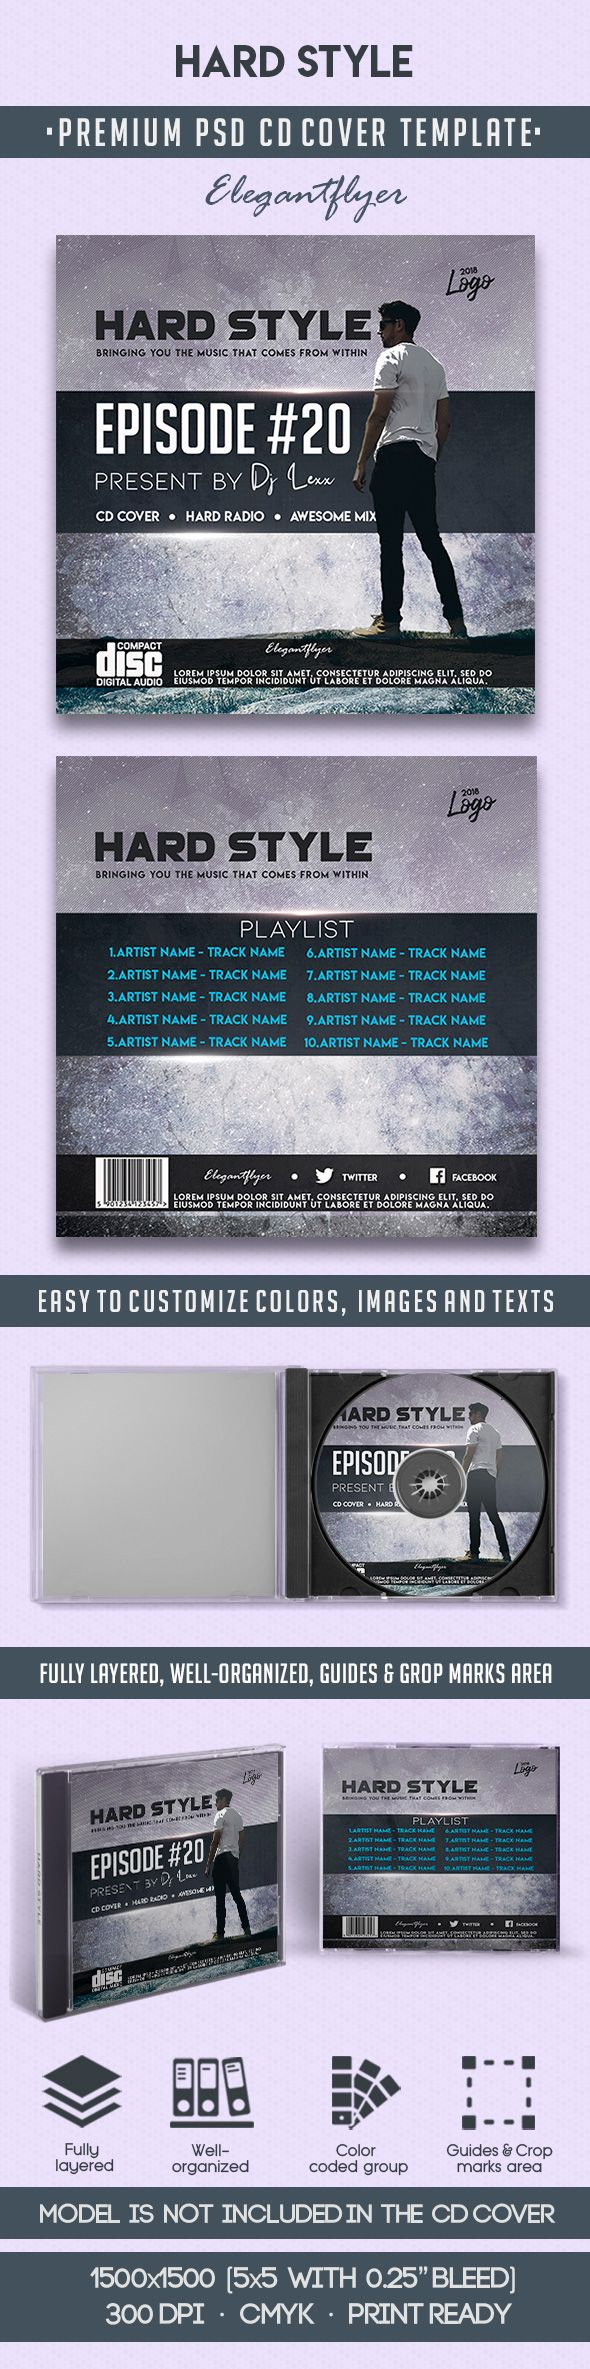 Hard Style CD Cover in PSD